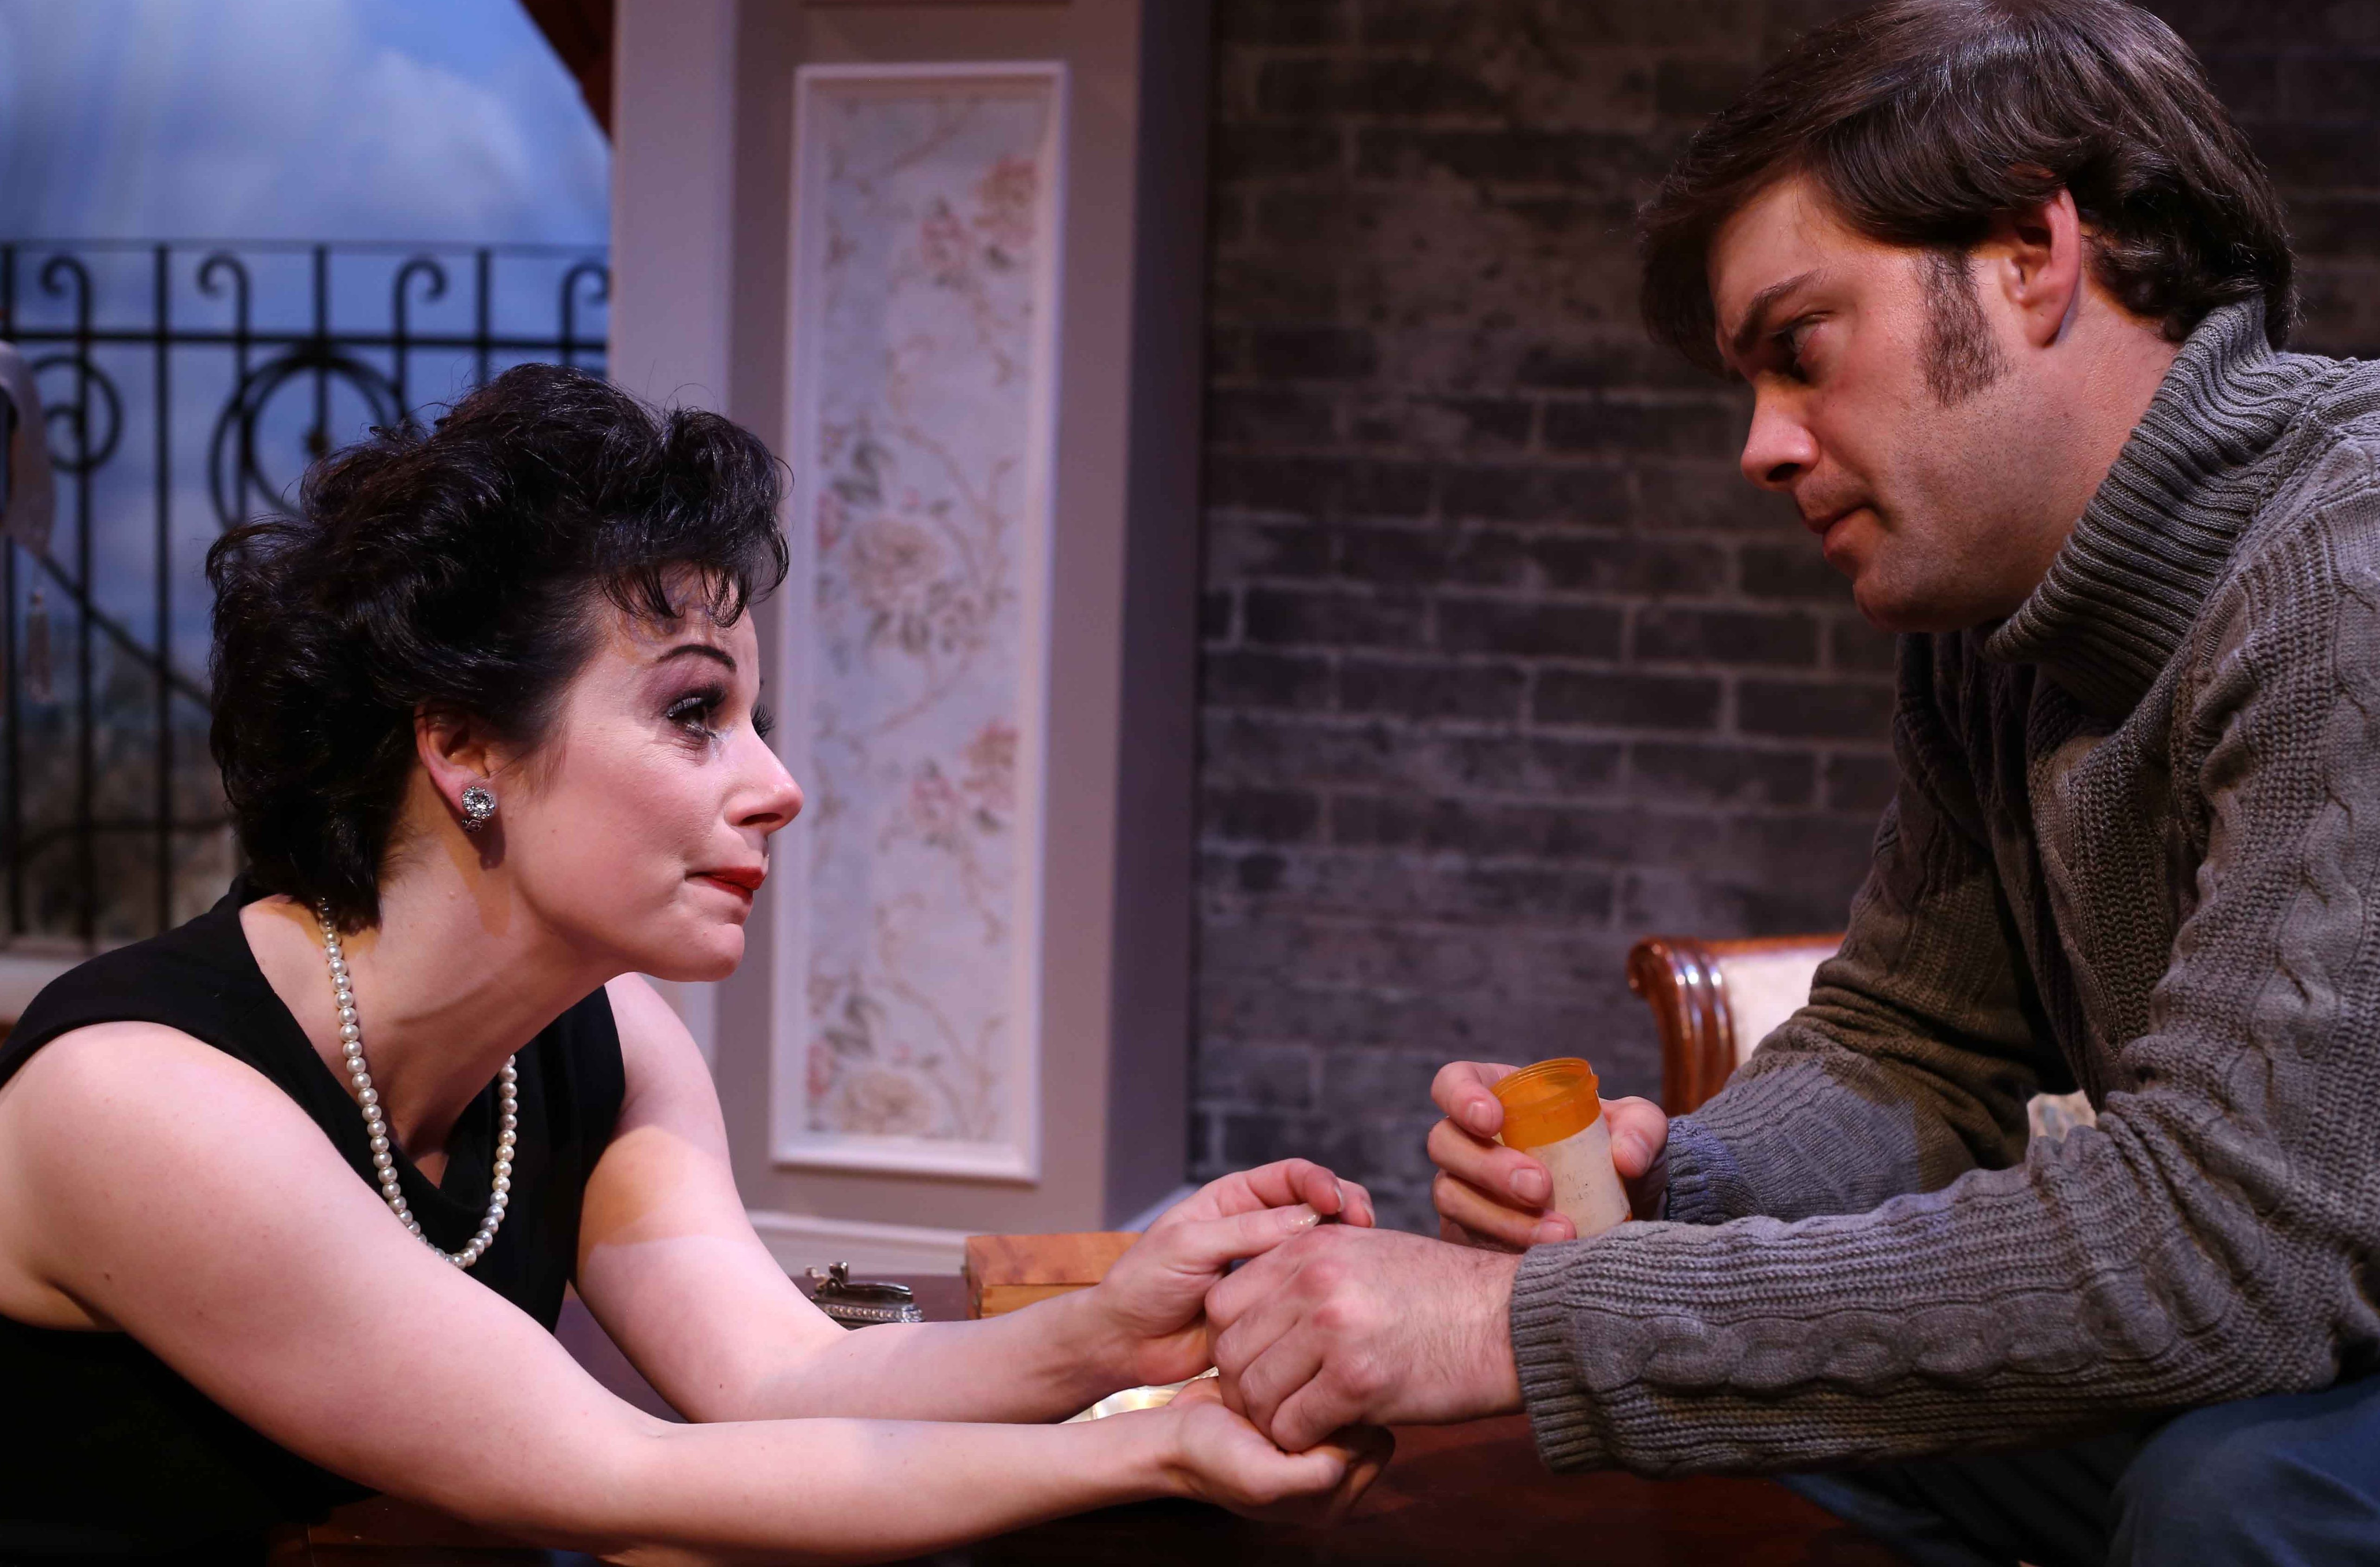 Ingersoll's Magnificent Performance Anchors Porchlight's END OF THE RAINBOW